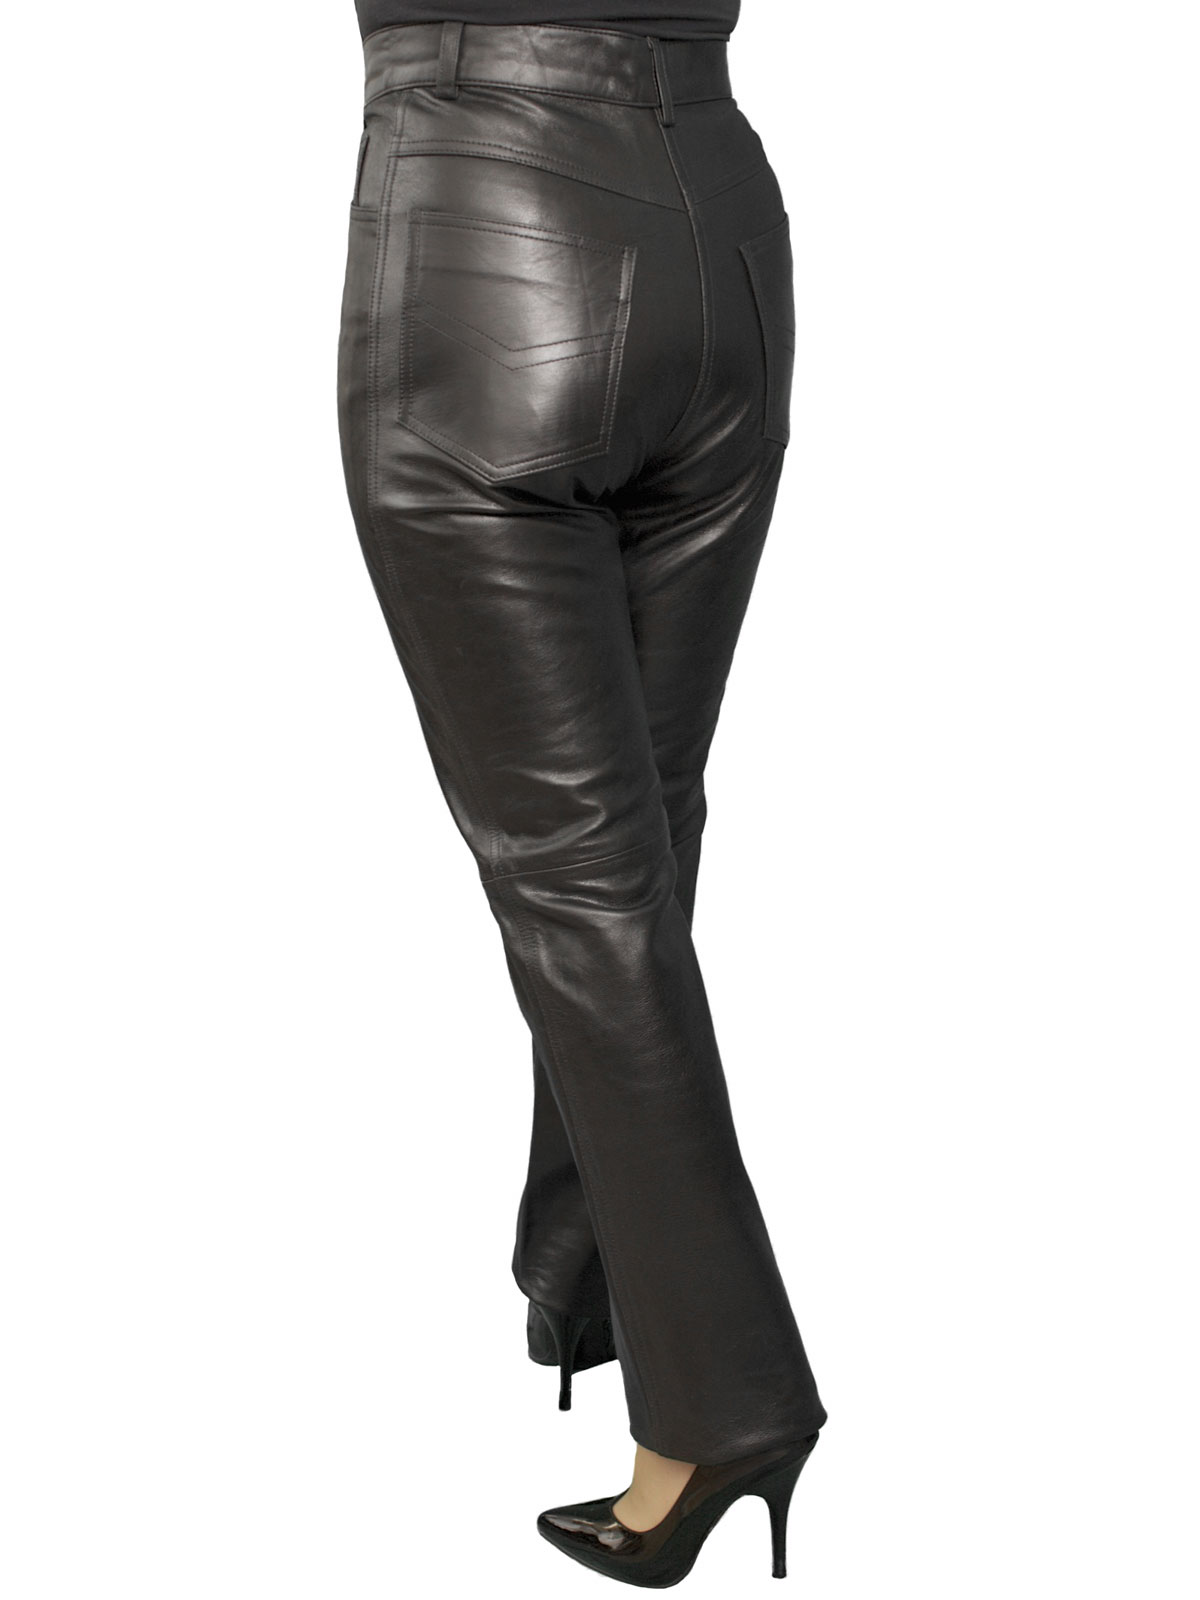 Free shipping and returns on Women's Leather (Genuine) Pants & Leggings at truedfil3gz.gq